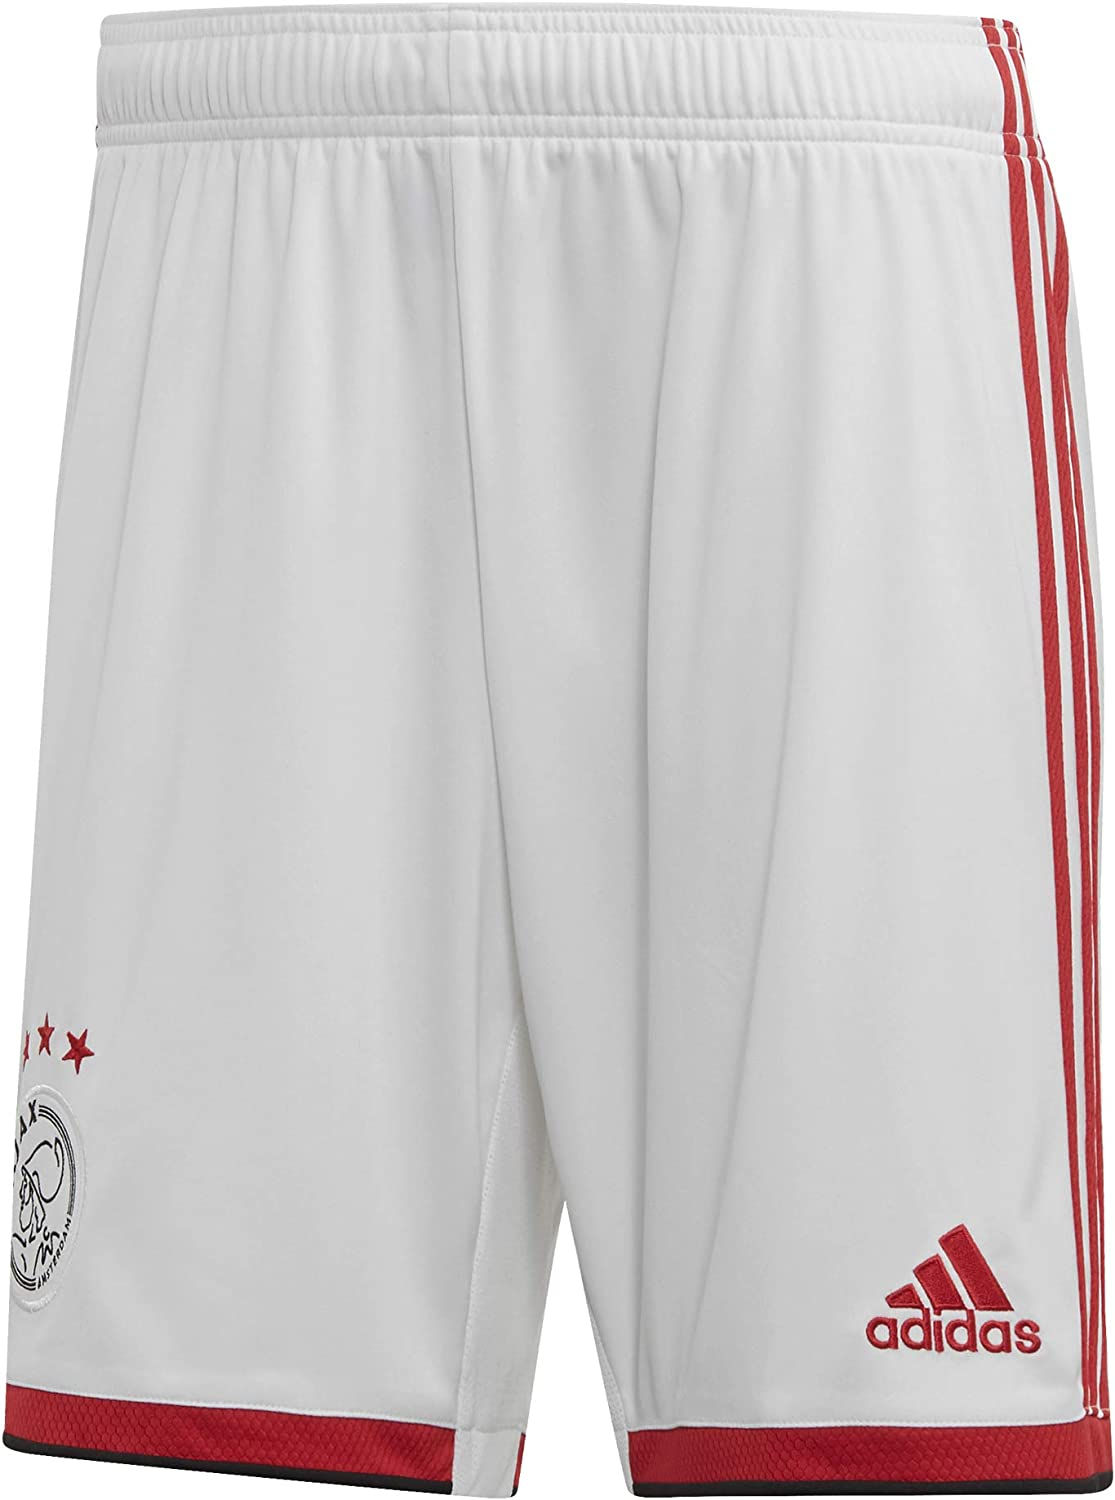 Ajax Home Football Shorts 2019 20XLarge